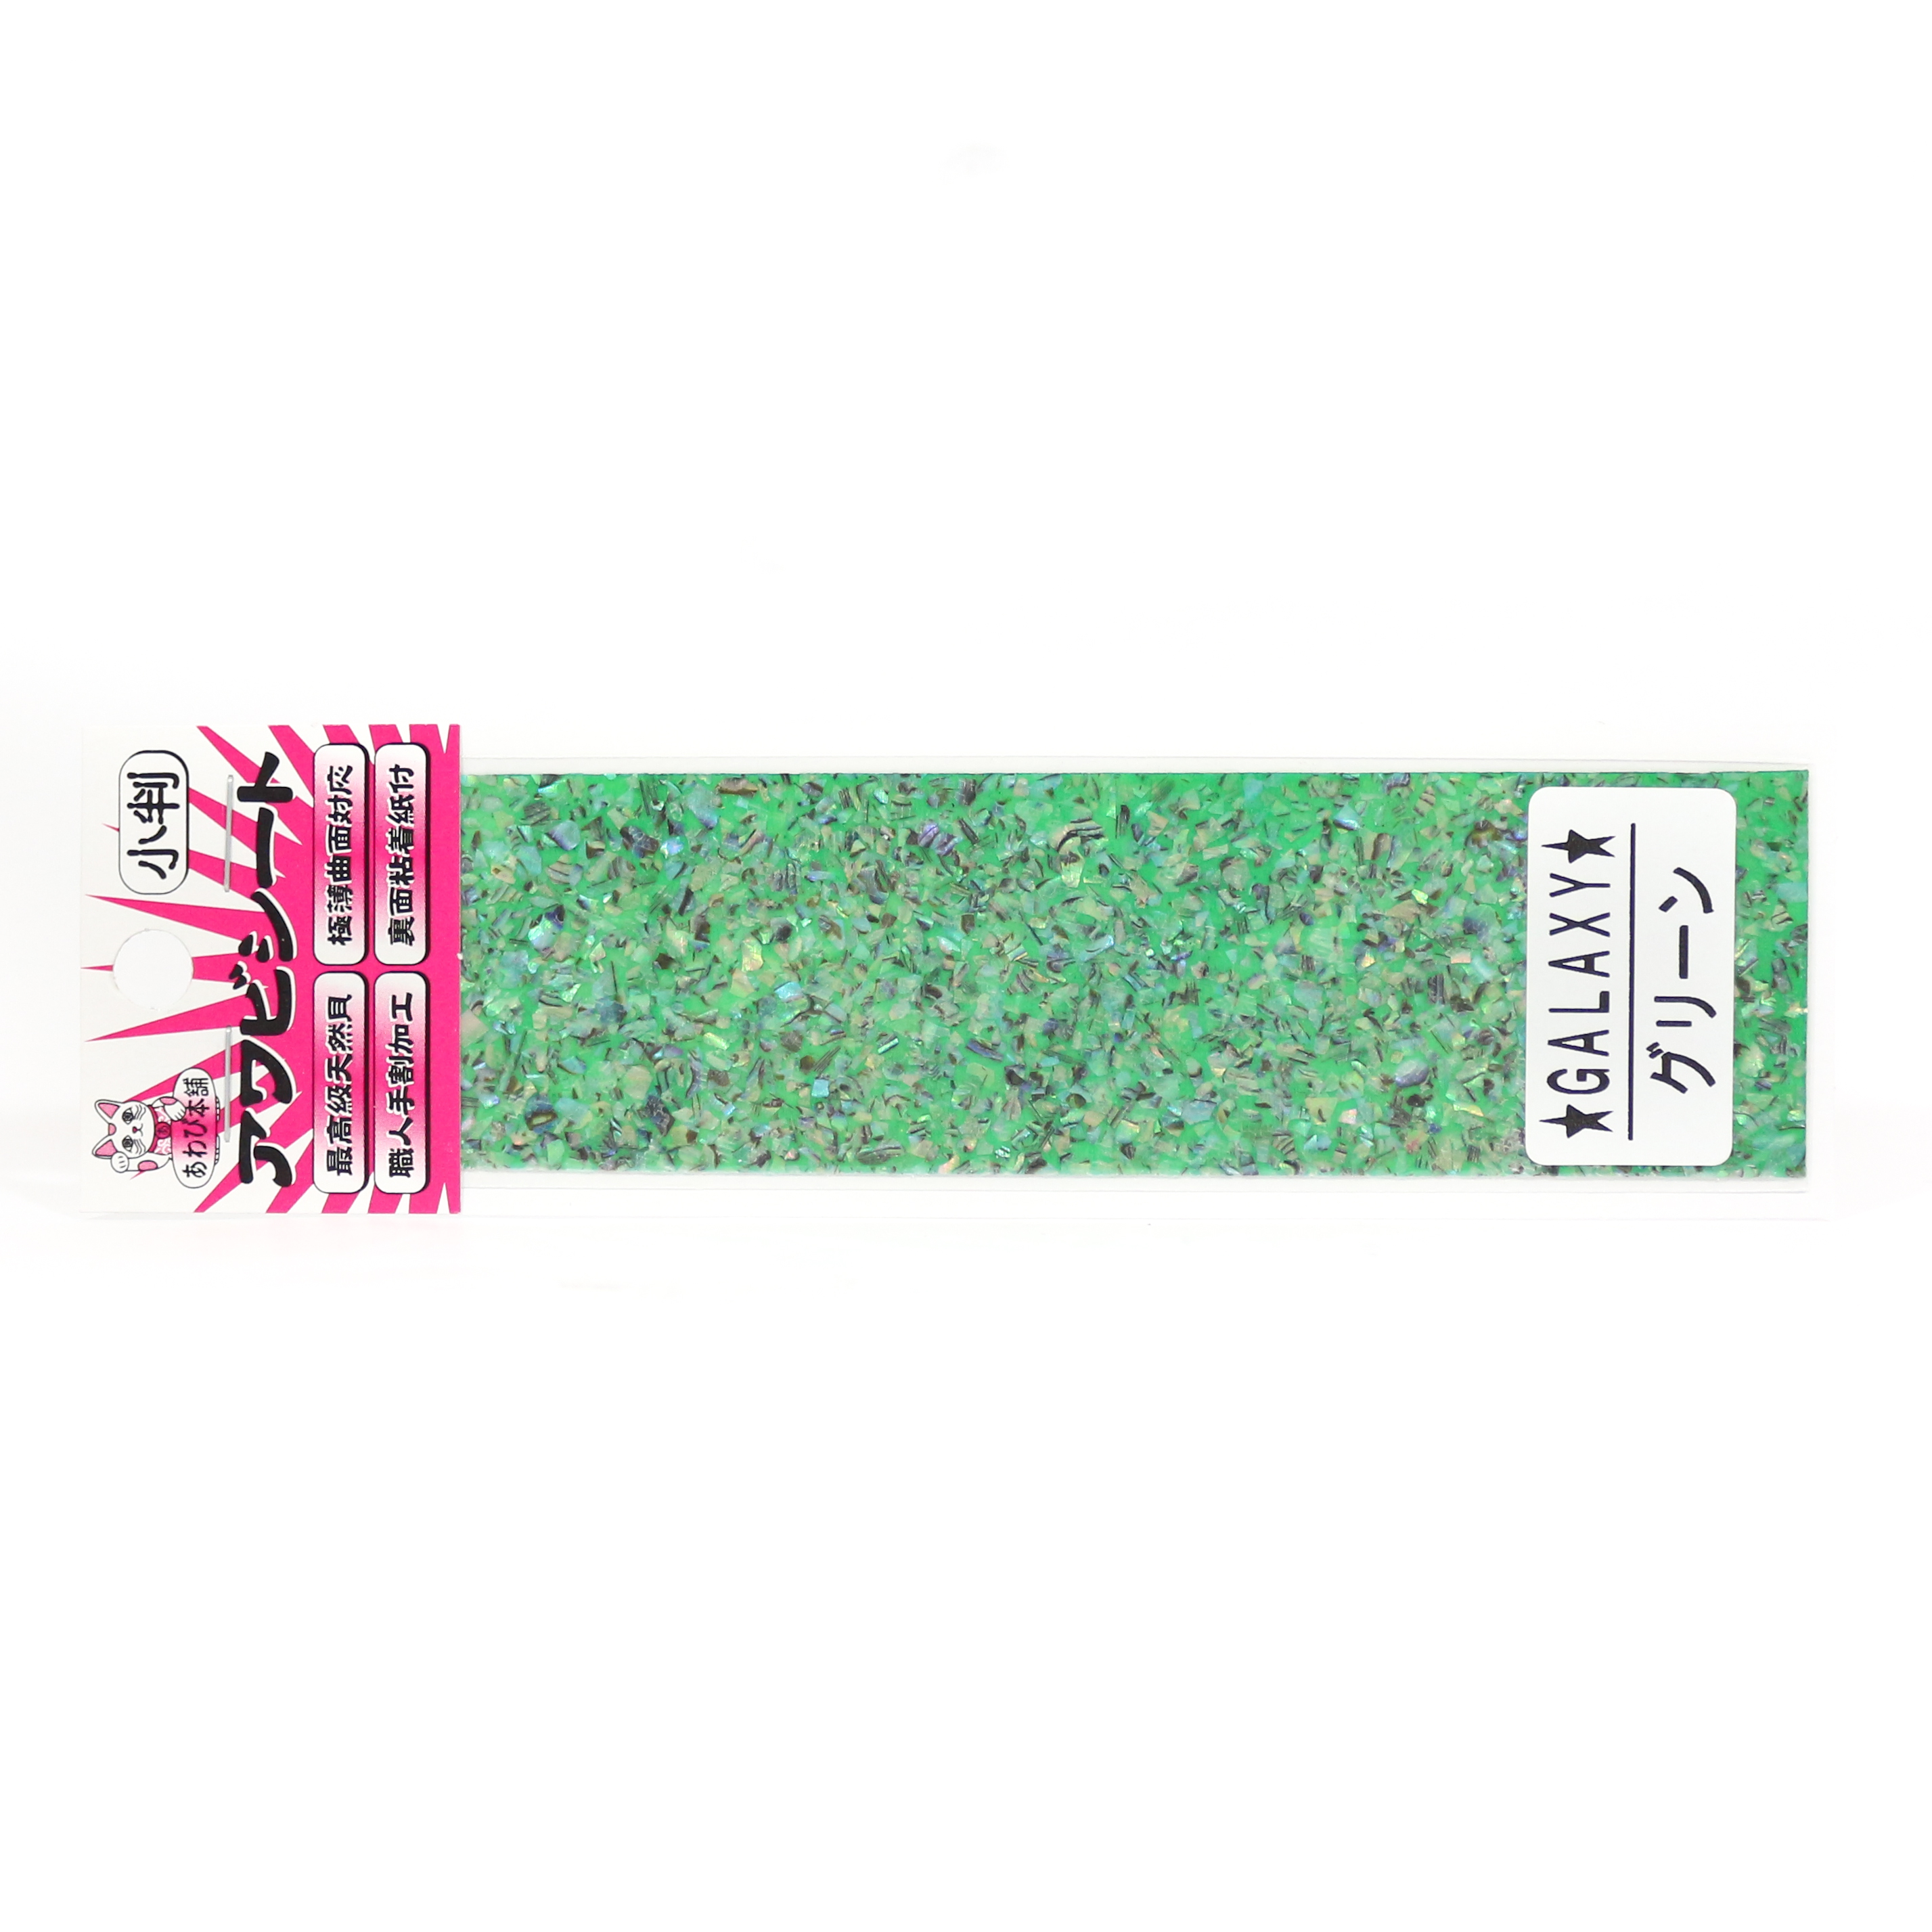 Awabi Honpo Awabi Sheet Galaxy Size S 40 x 140 mm Green (2446)